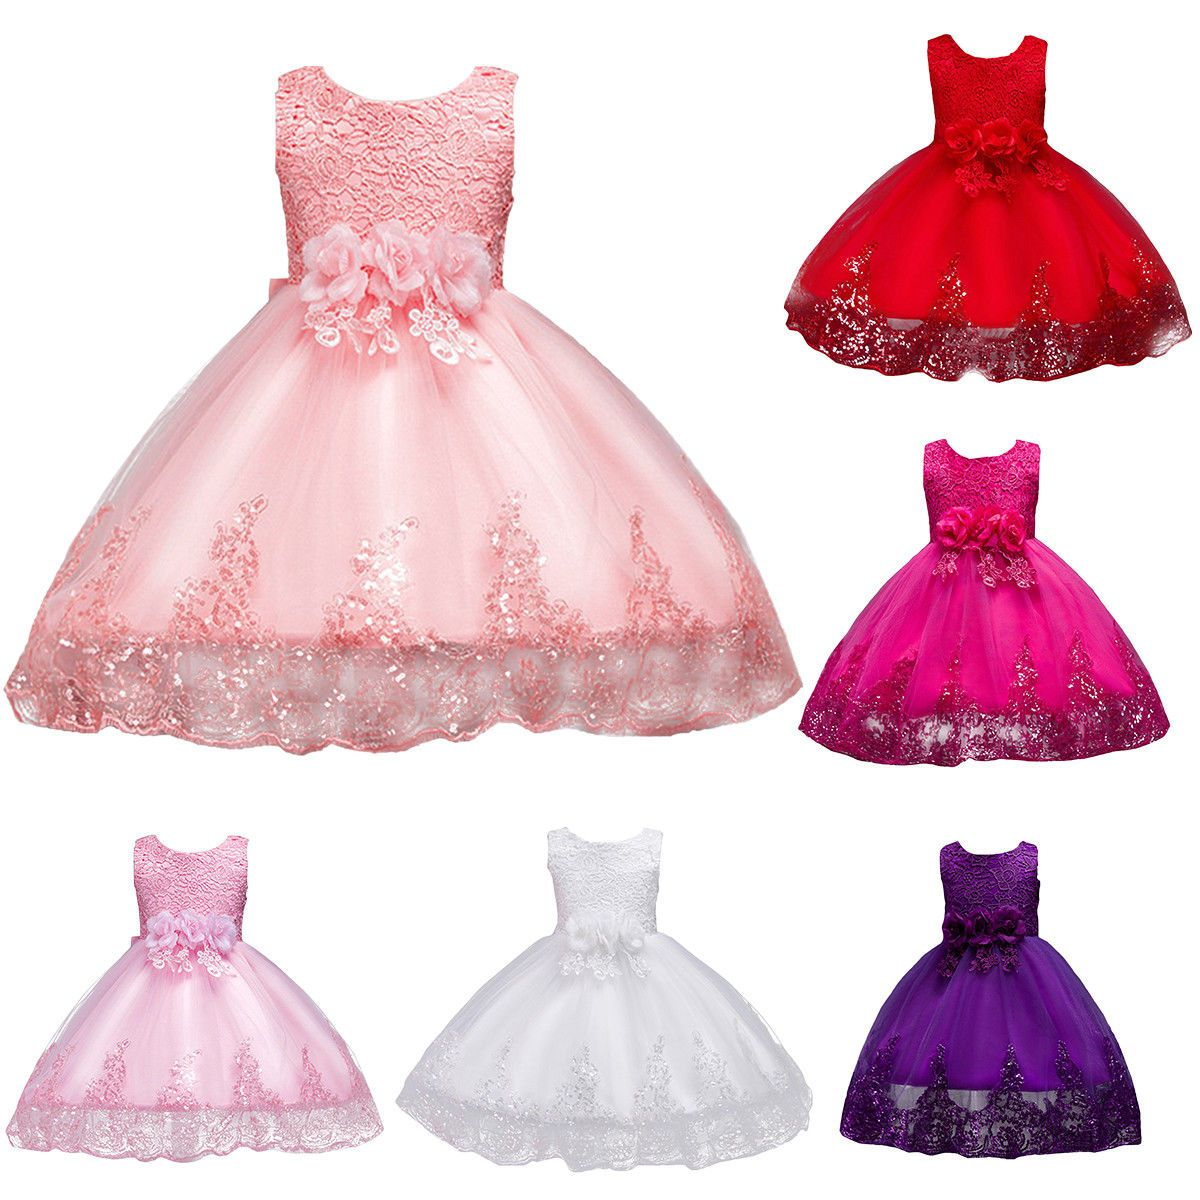 Toddler baby girls princess dress flower girl wedding pageant party